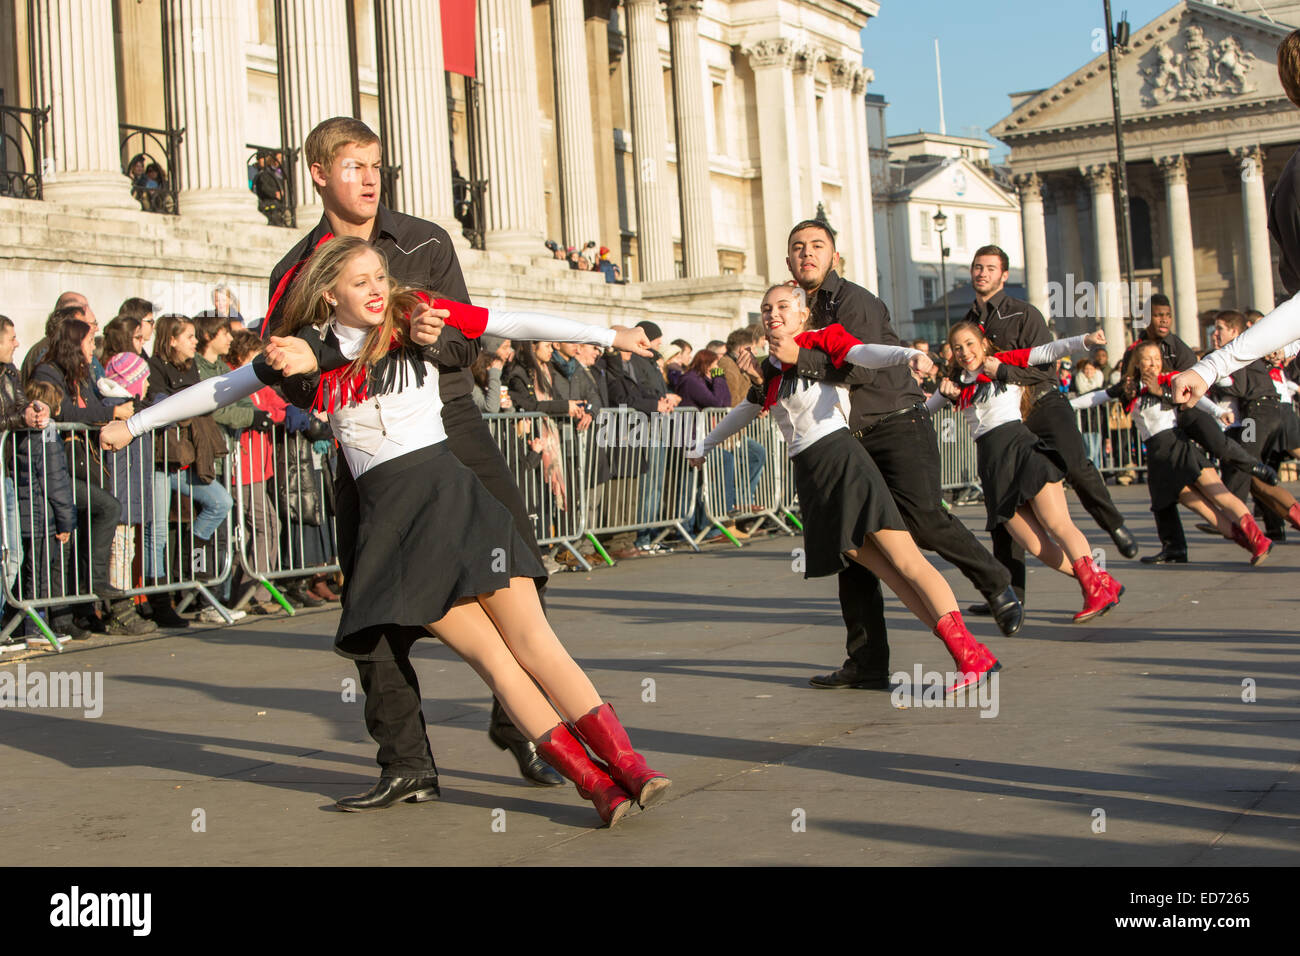 Trafalgar Square, London, UK.  30th December 2014.  The Lake Highlands Wildcat Wranglers dance troupe, from Texas, - Stock Image